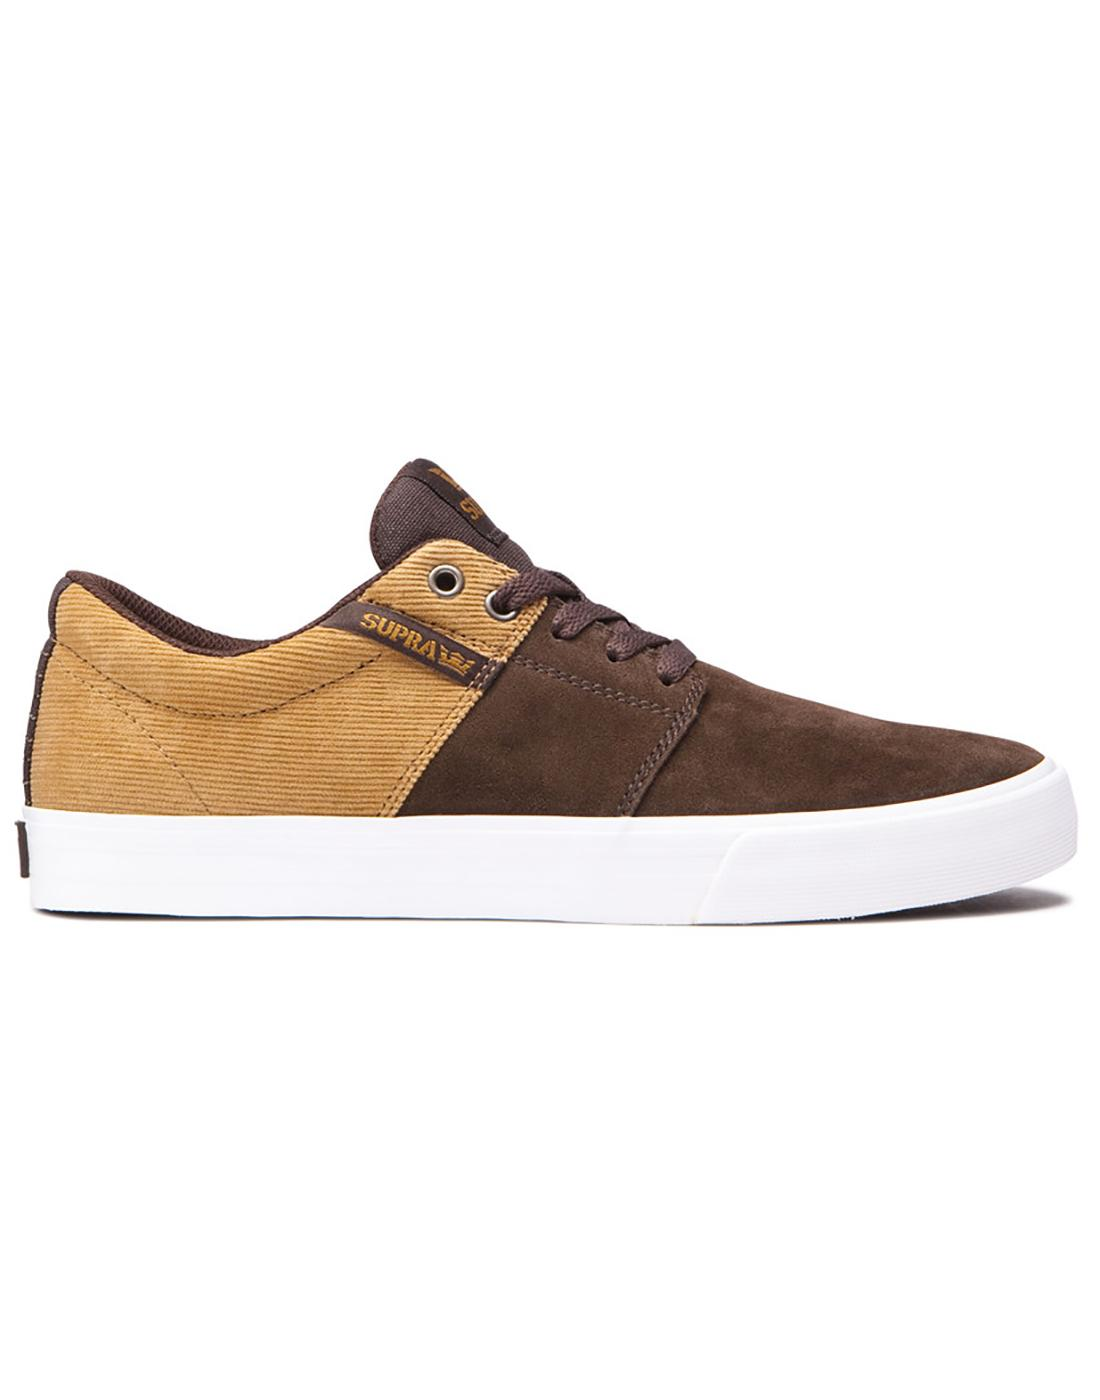 Stacks II Vulc SUPRA Retro 70s Cord Trainers Brown